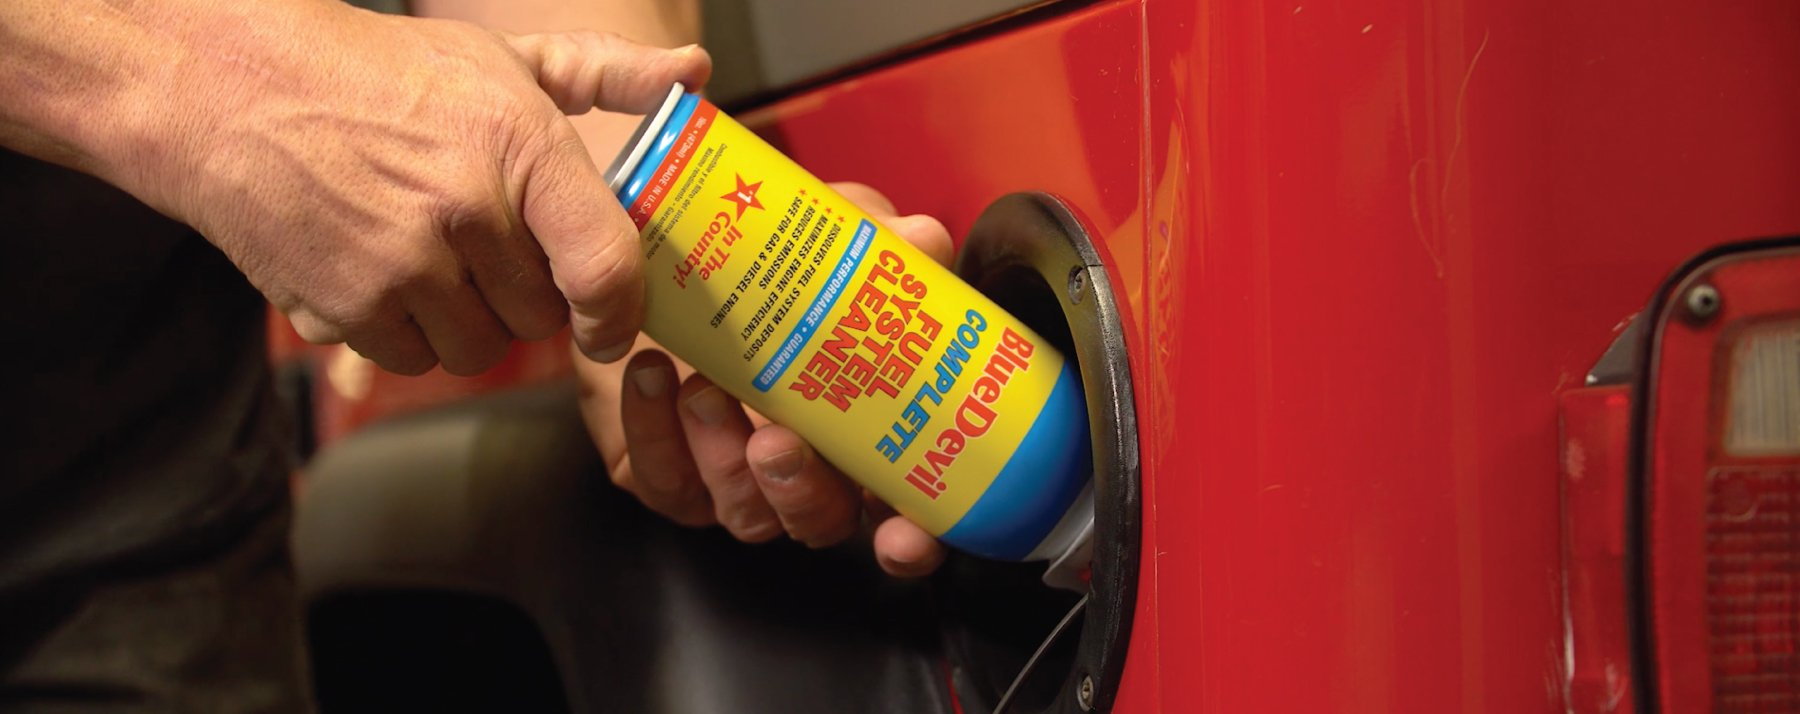 BlueDevil Fuel System Cleaner